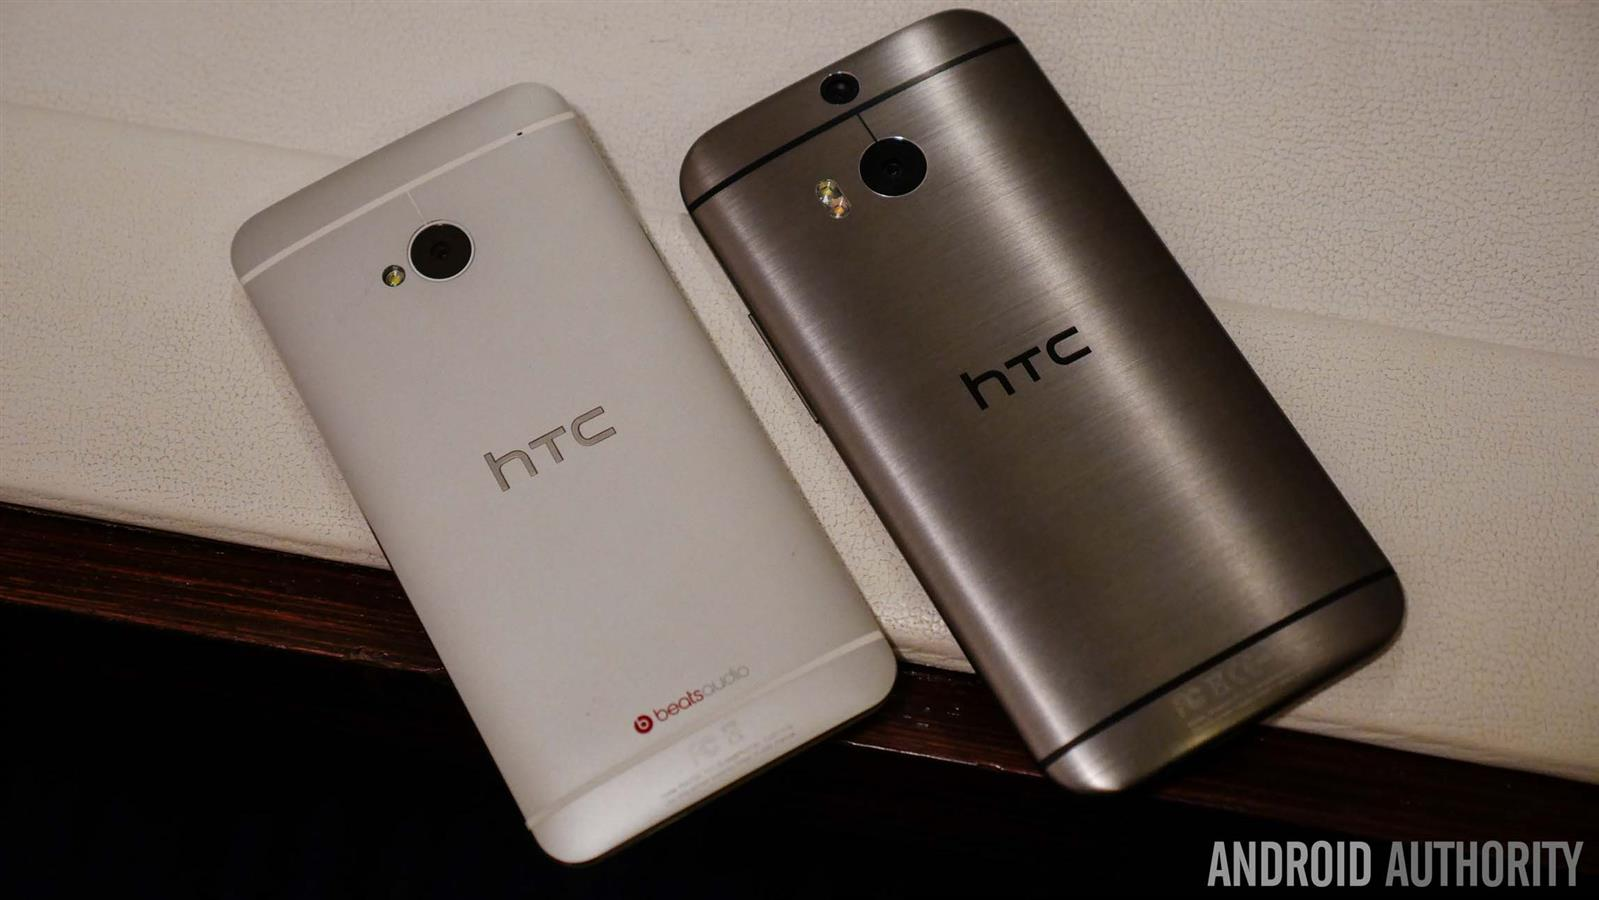 htc-one-m8-vs-htc-one-m7-quick-look-aa-1-of-191